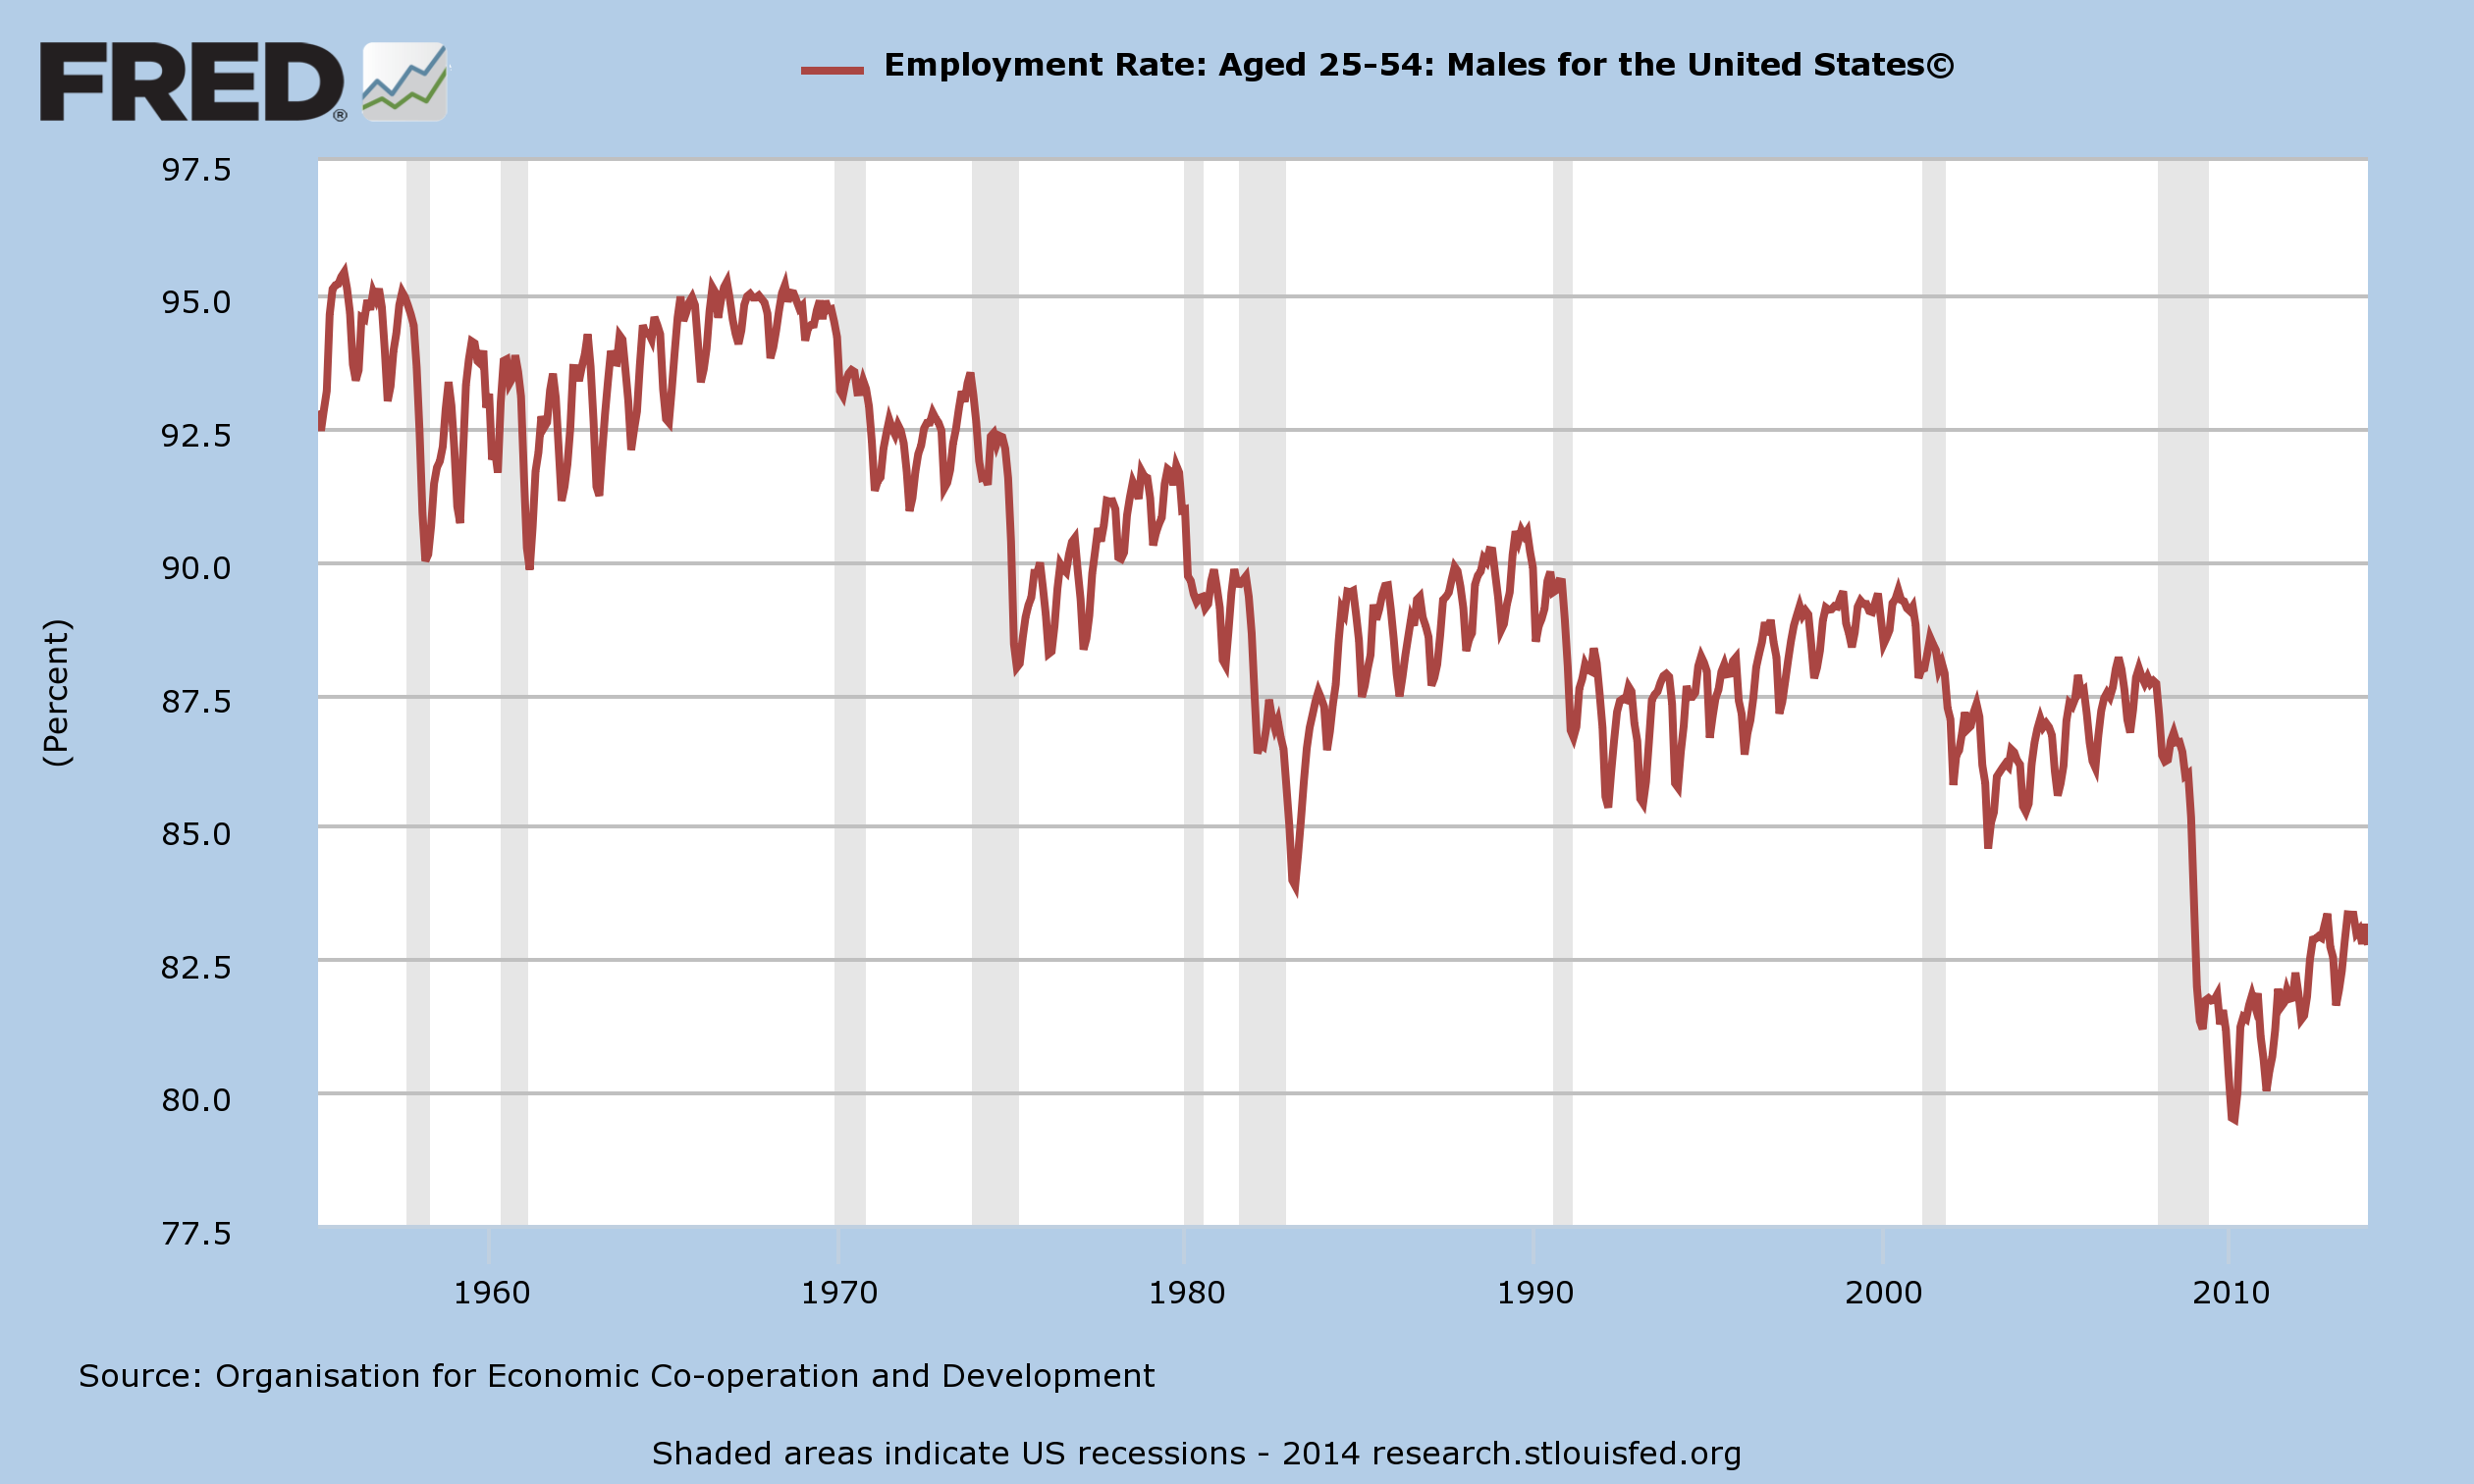 Employment Rate Men 25 to 54